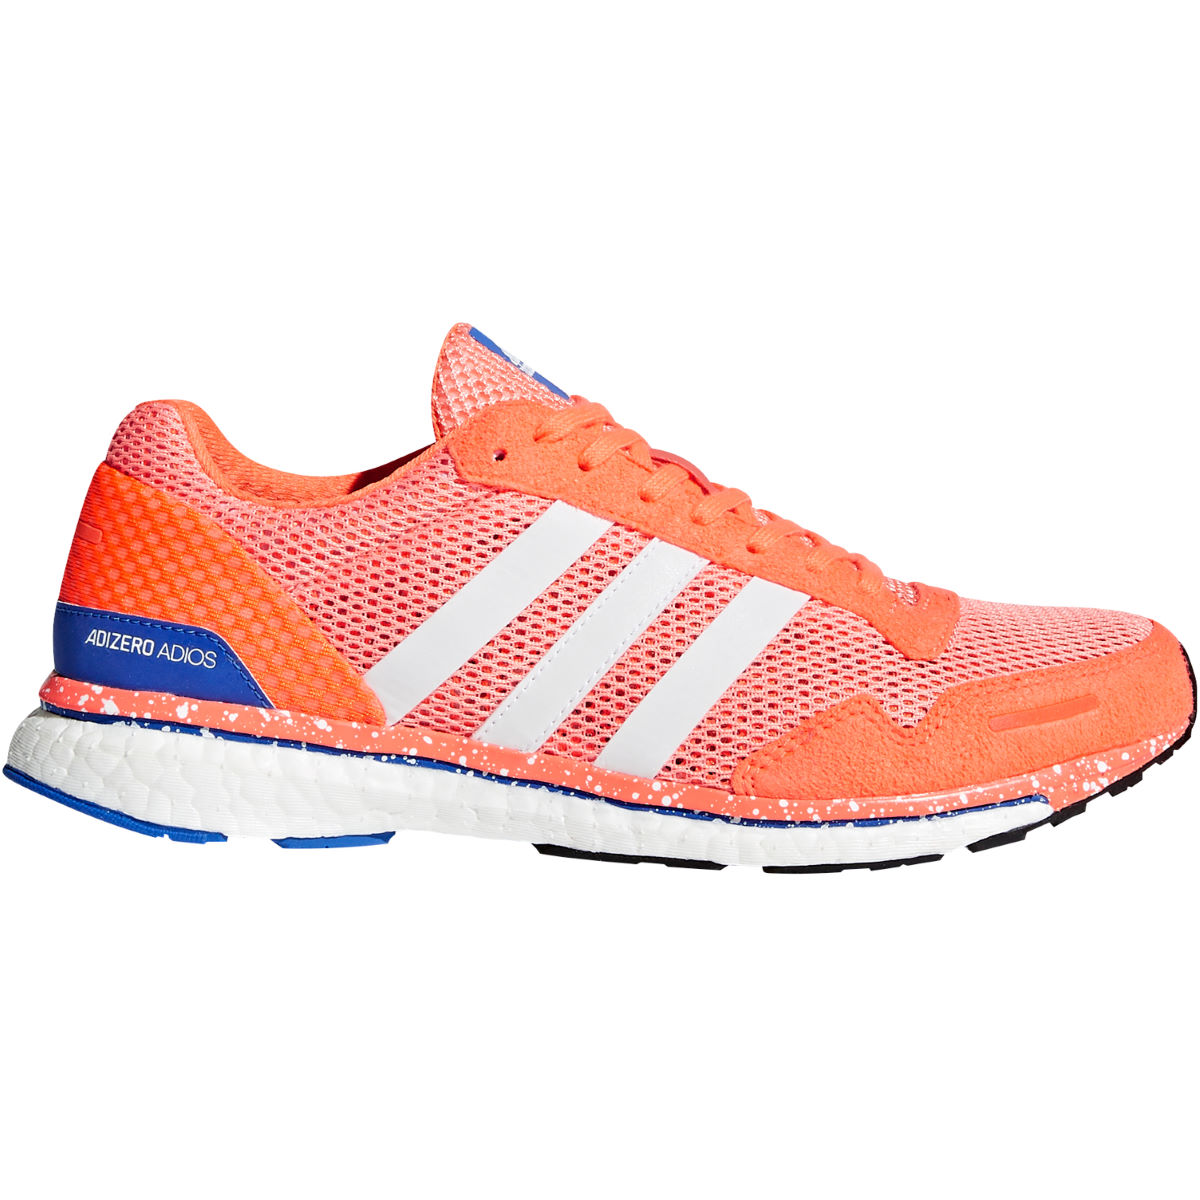 adidas Women's adios Shoes - Zapatillas de running